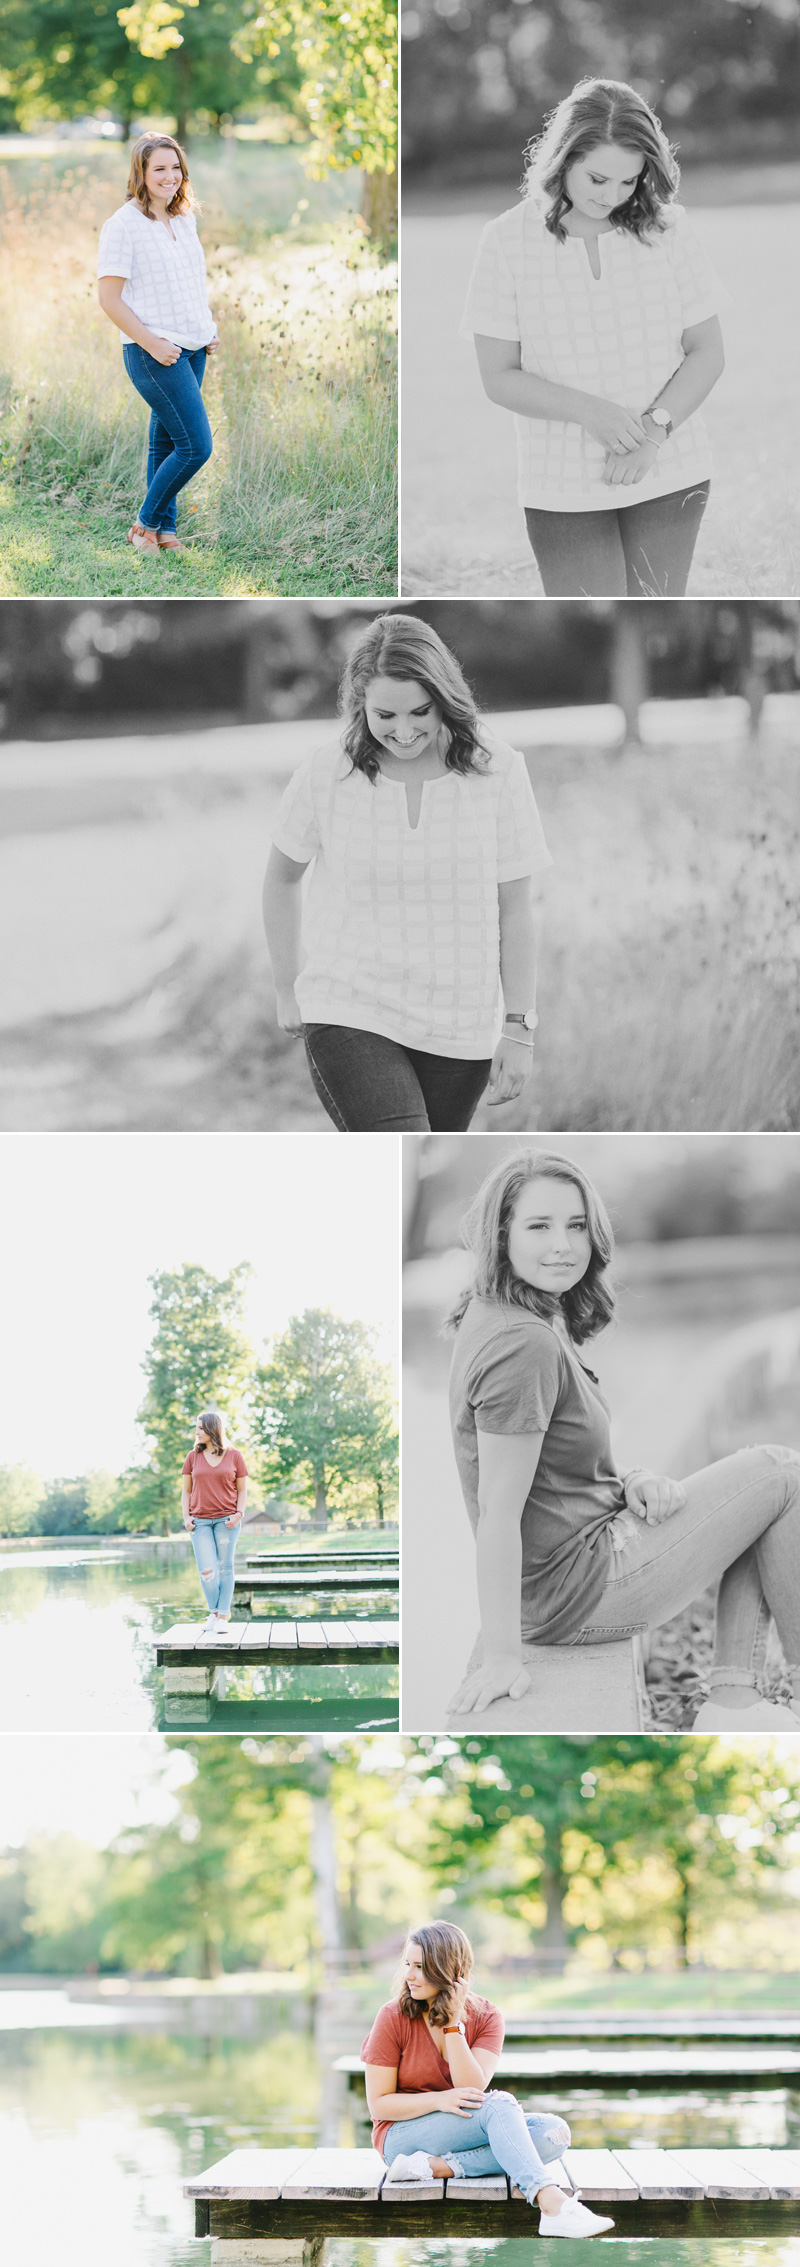 Photography by Lux Senior Photography